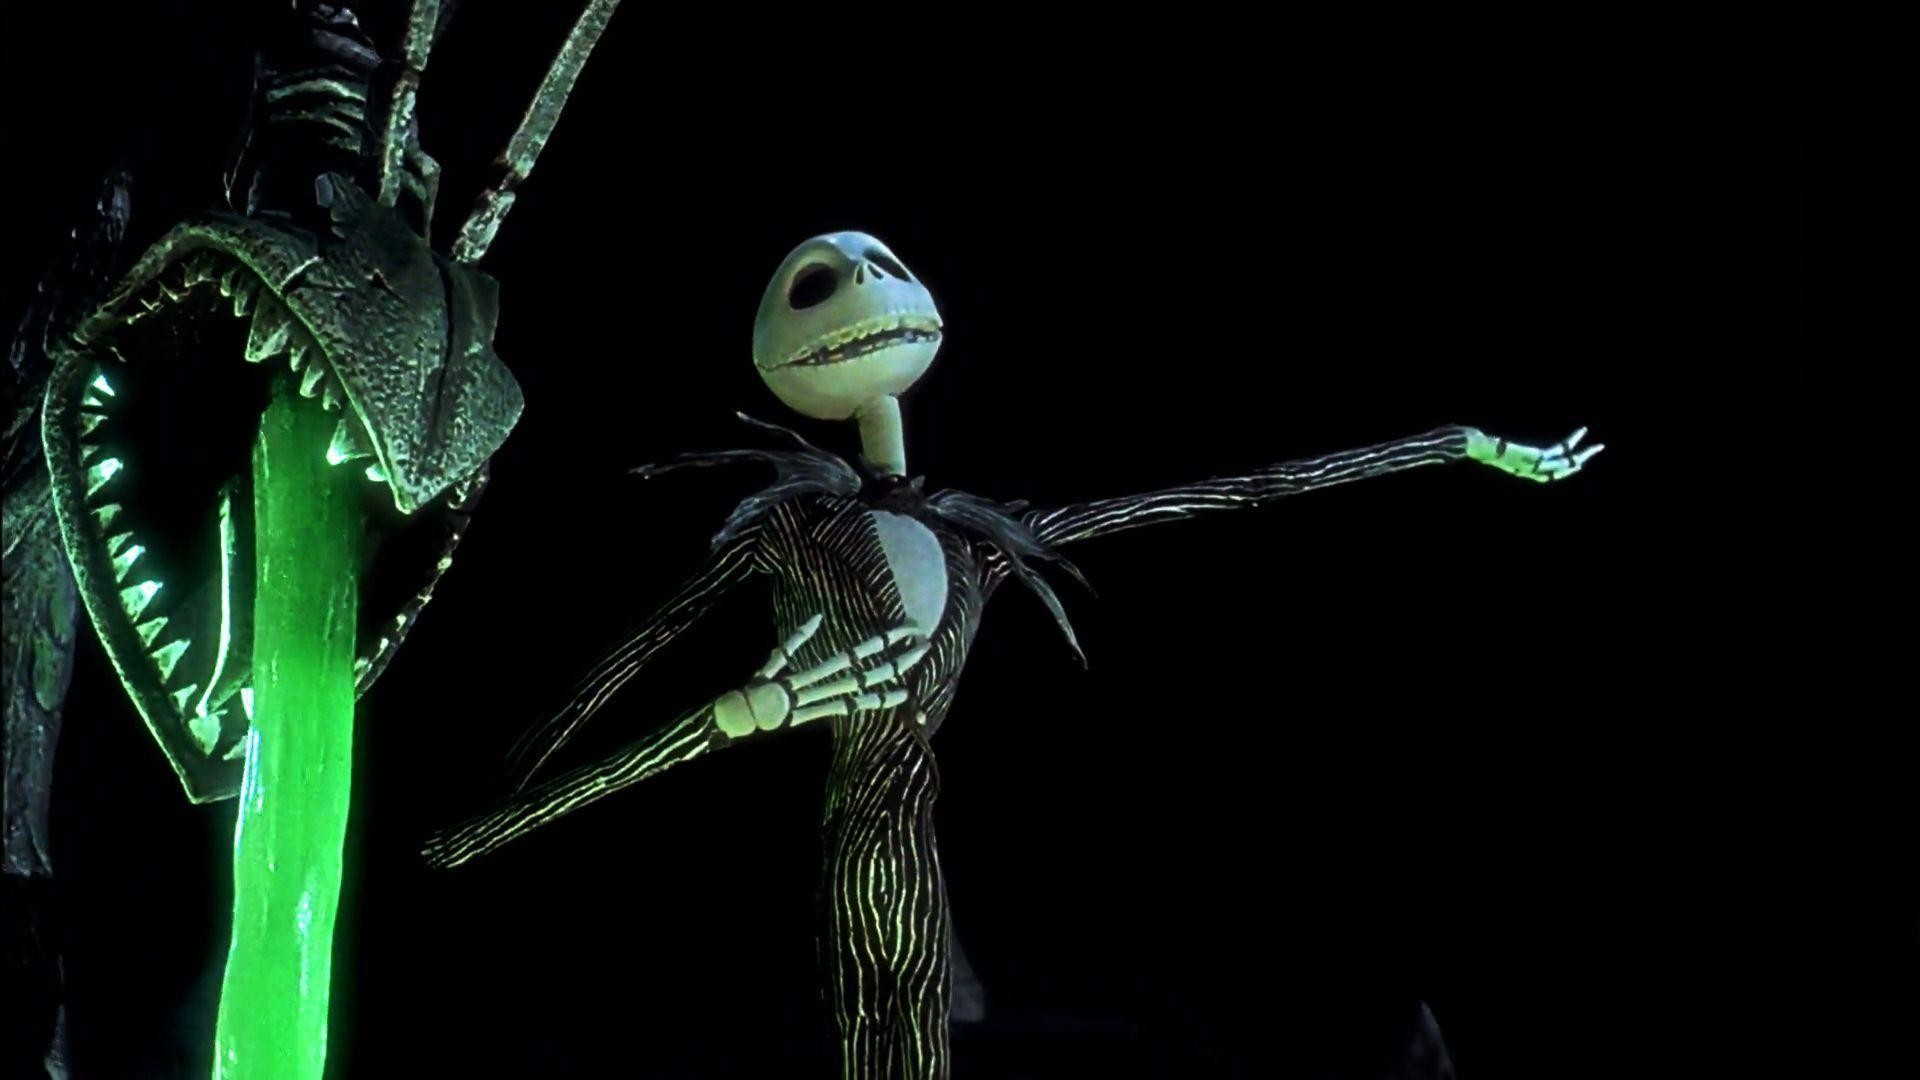 Wallpapers For > Jack Skellington Christmas Wallpaper